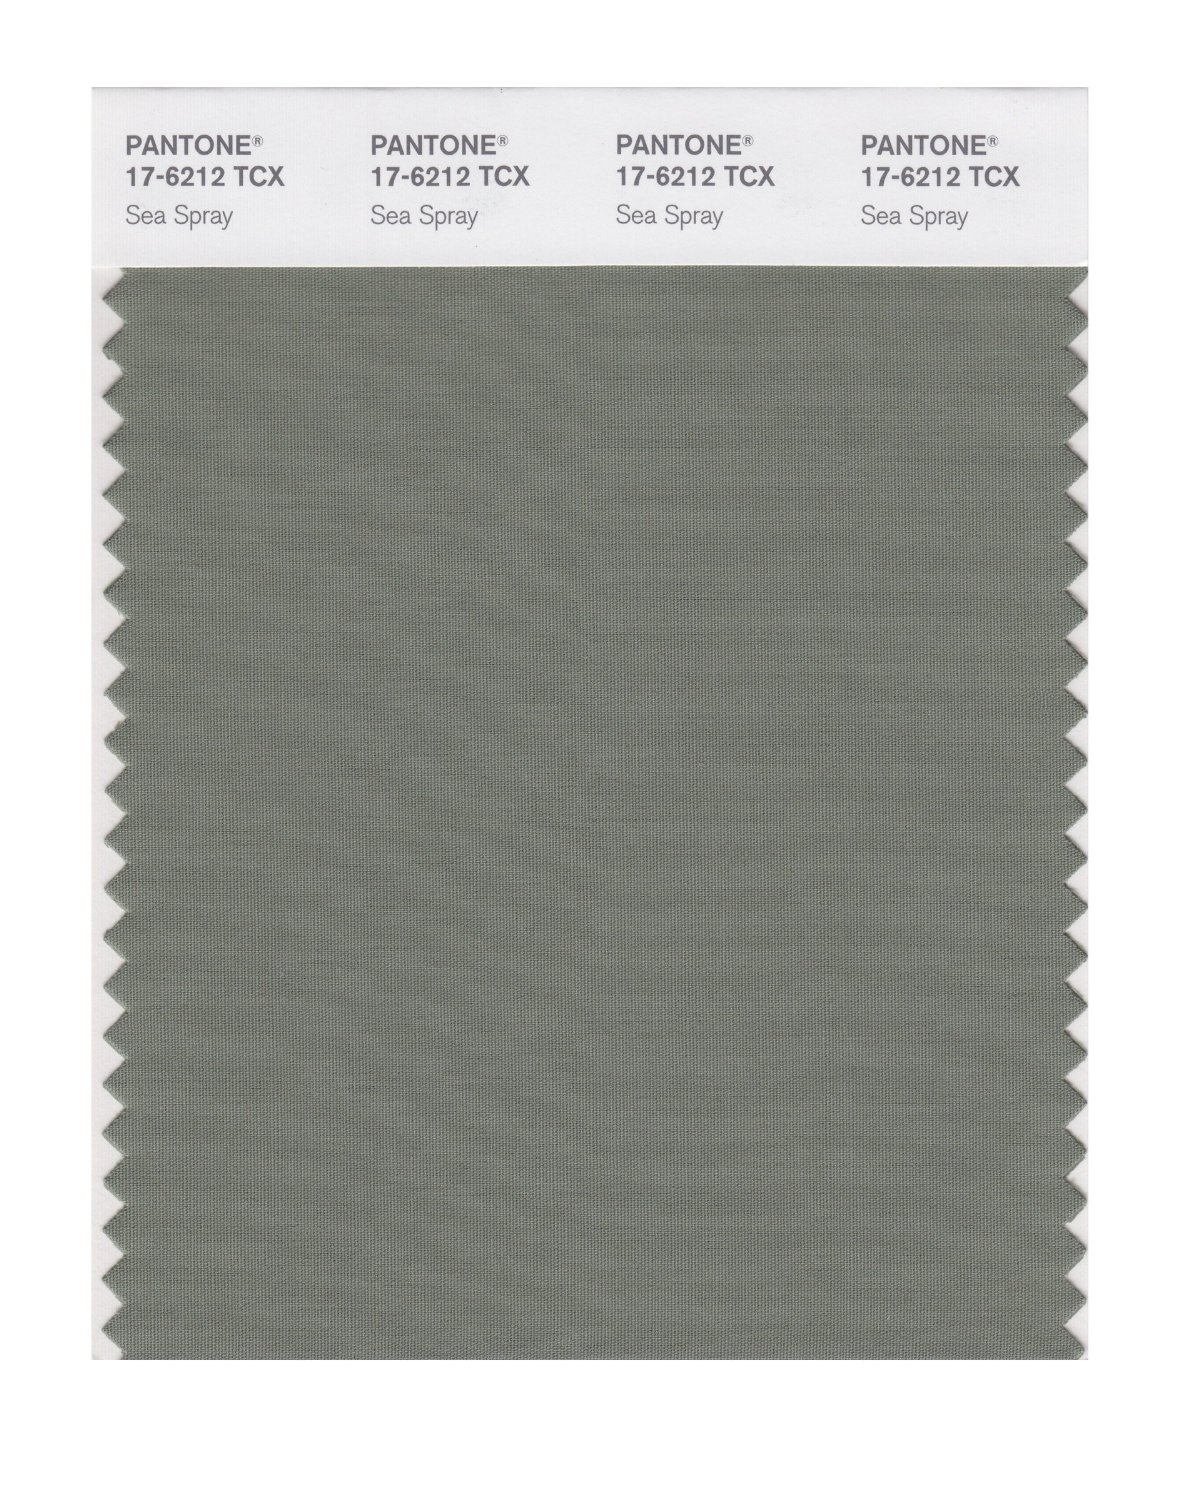 Pantone Smart Swatch 17-6212 Sea Spray